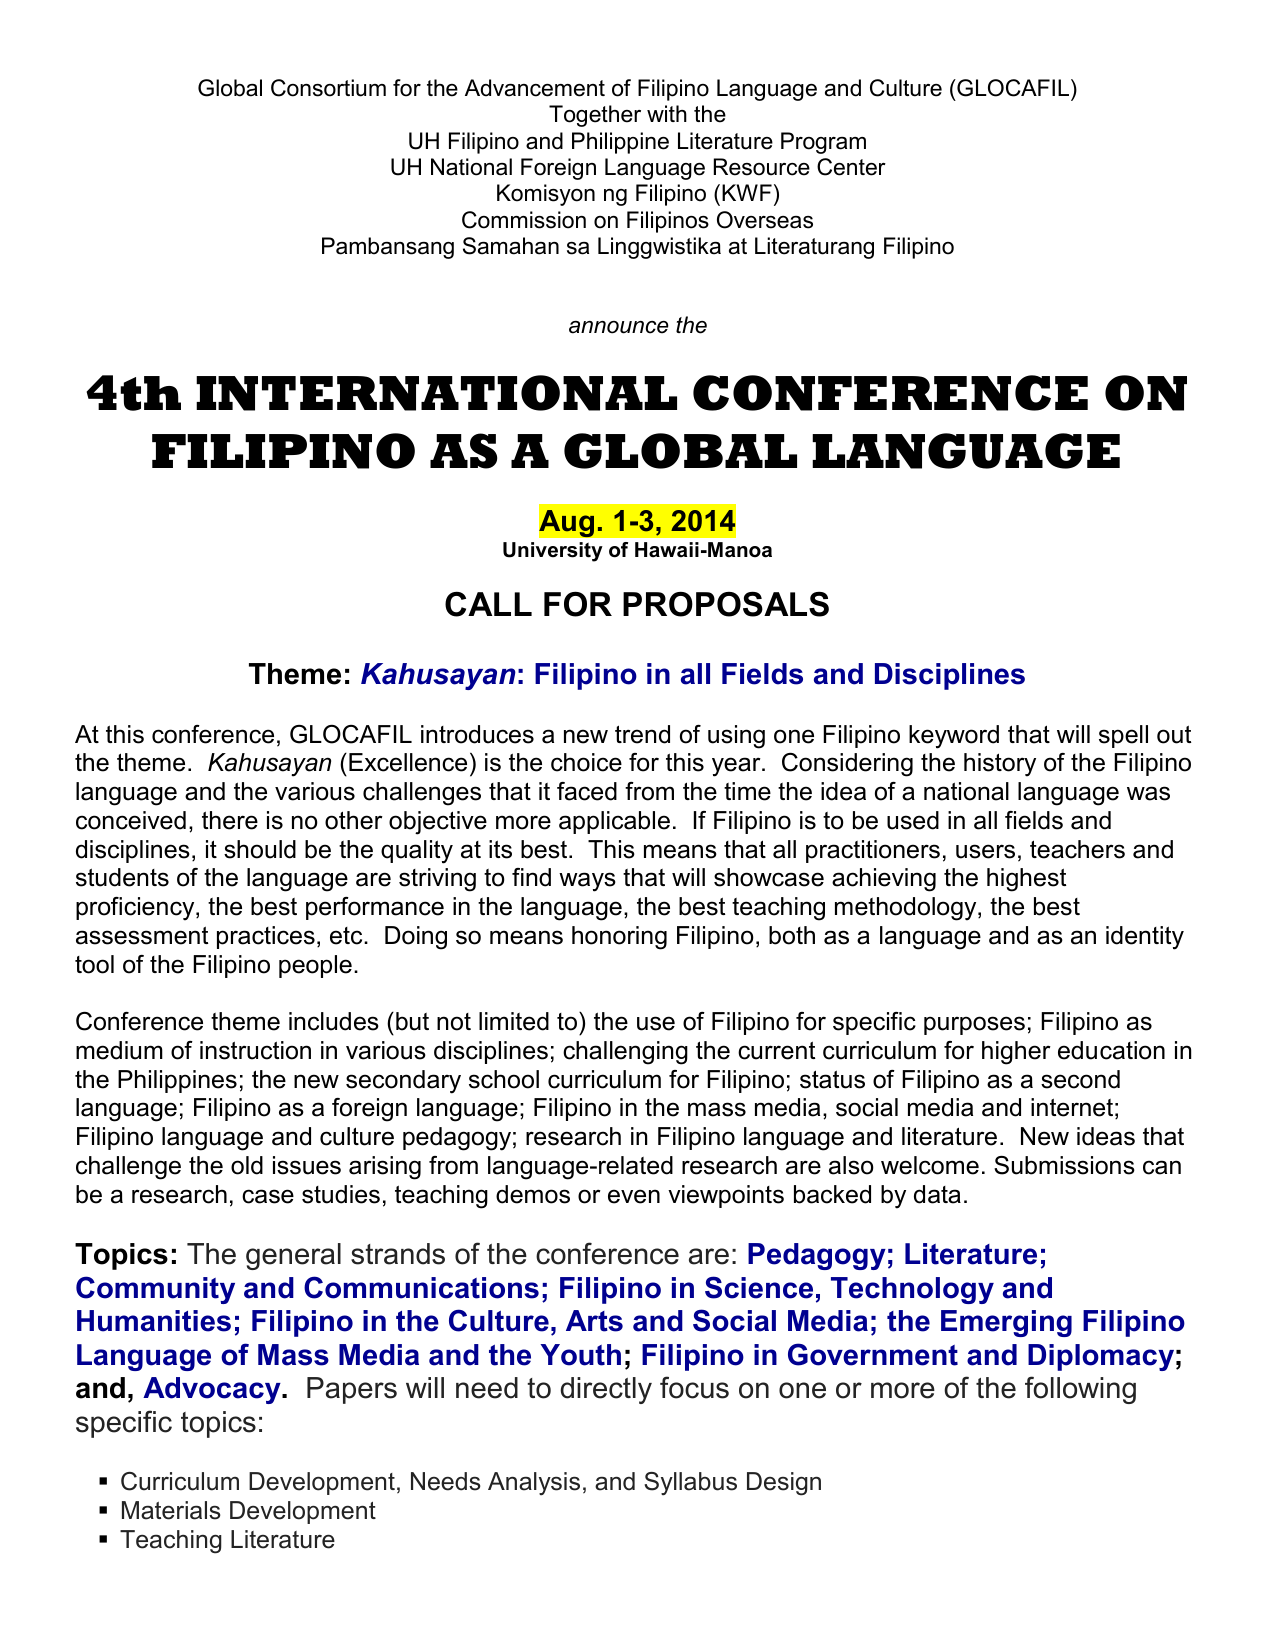 4th INTERNATIONAL CONFERENCE ON FILIPINO AS A GLOBAL